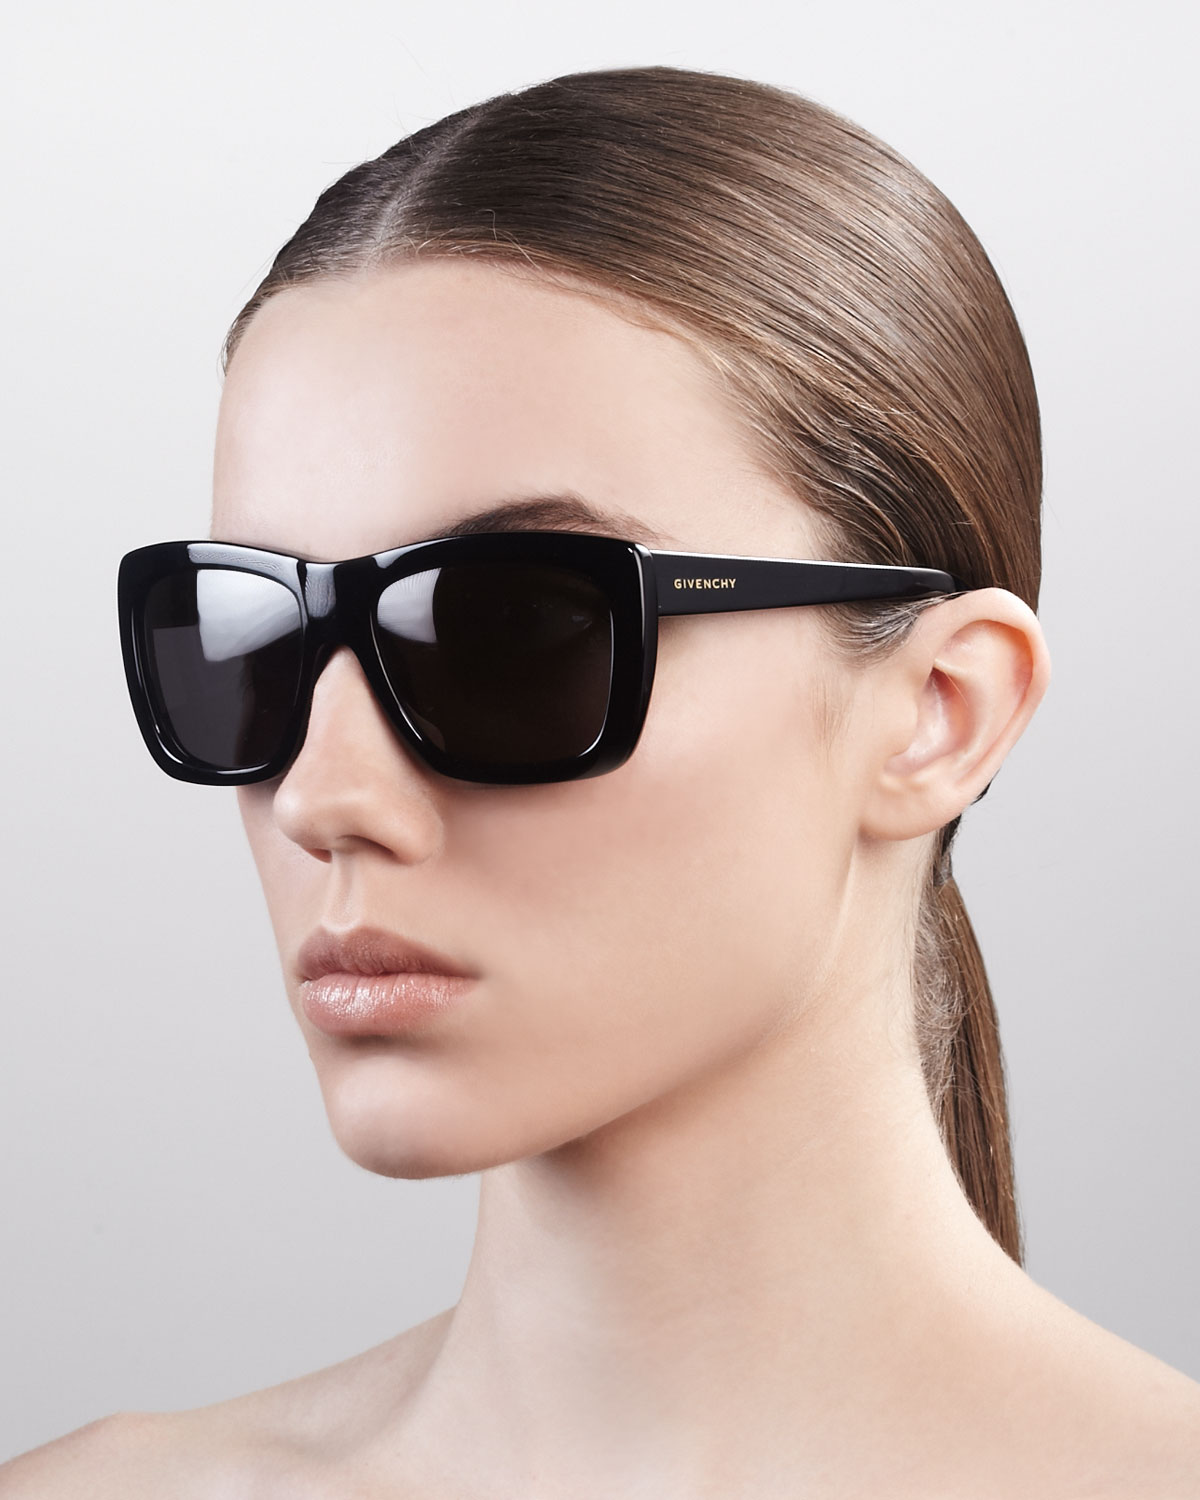 7b89d28a851 Lyst - Givenchy Oversized Square Sunglasses Shiny Black in Black